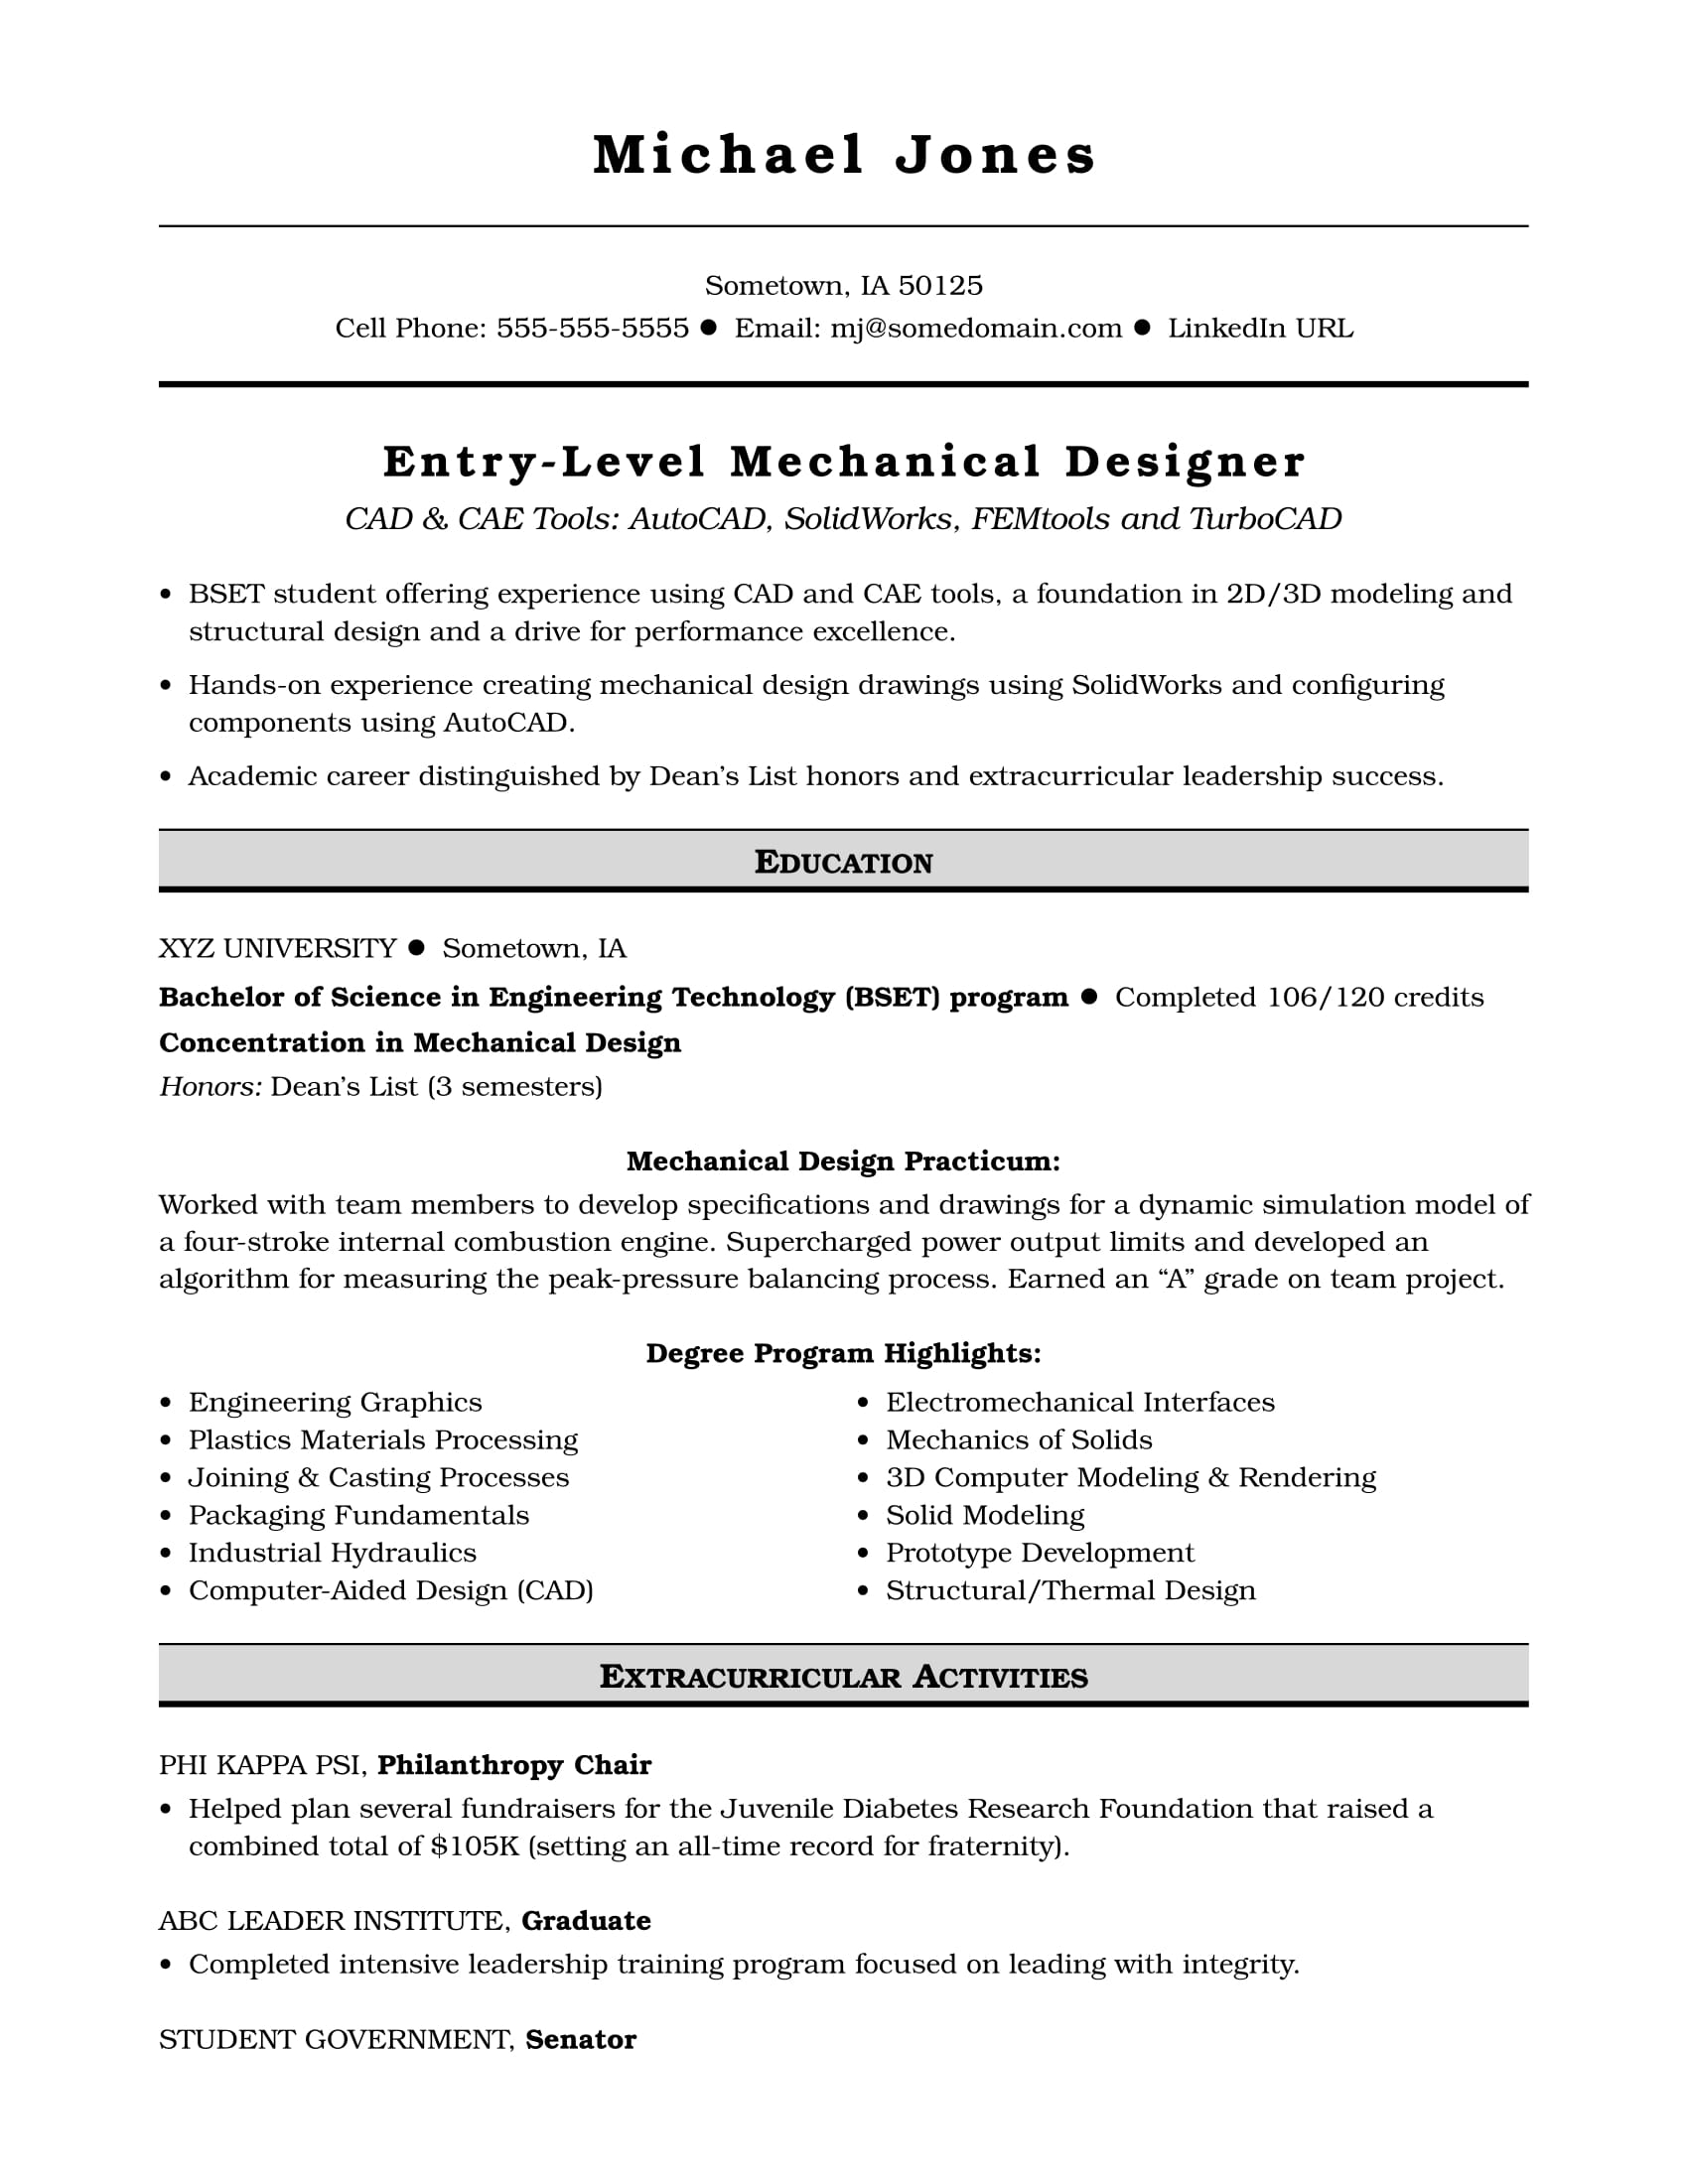 sample resume for an entry level mechanical designer monster engineering examples uncc Resume Entry Level Mechanical Engineering Resume Examples